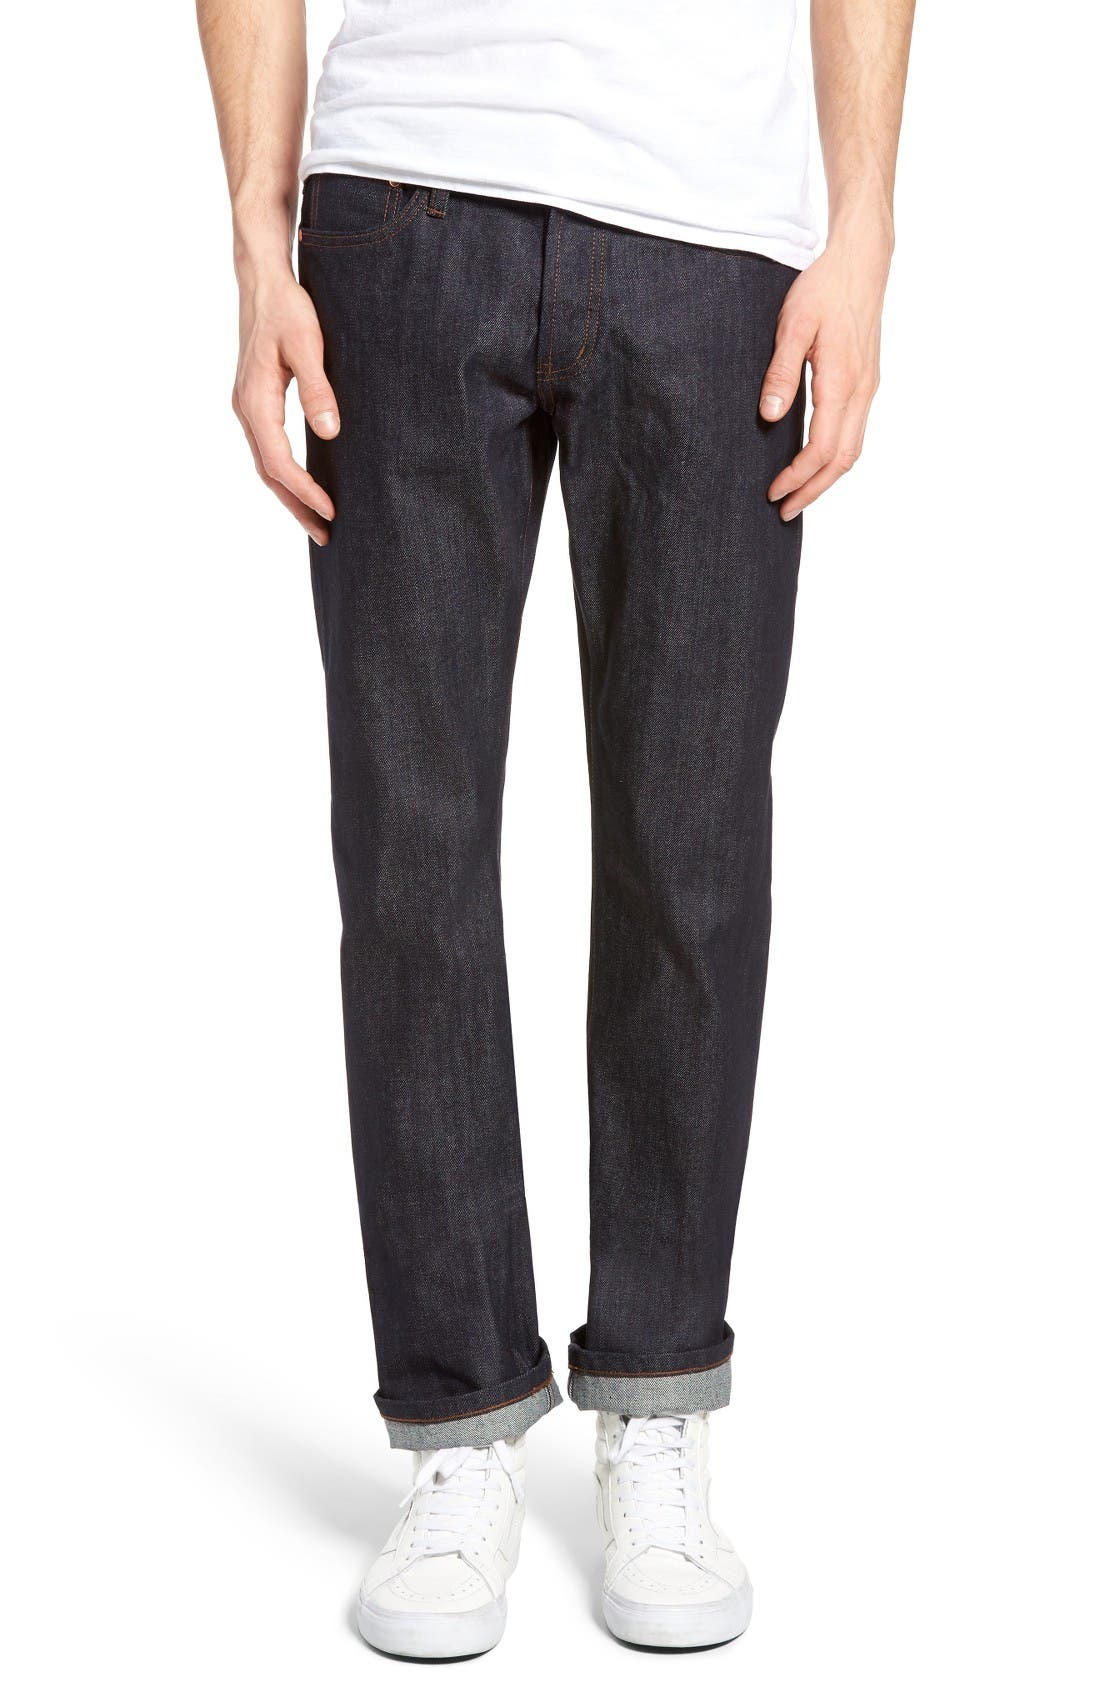 Main Image - The Unbranded Brand UB301 Straight Leg Raw Selvedge Jeans (Indigo)